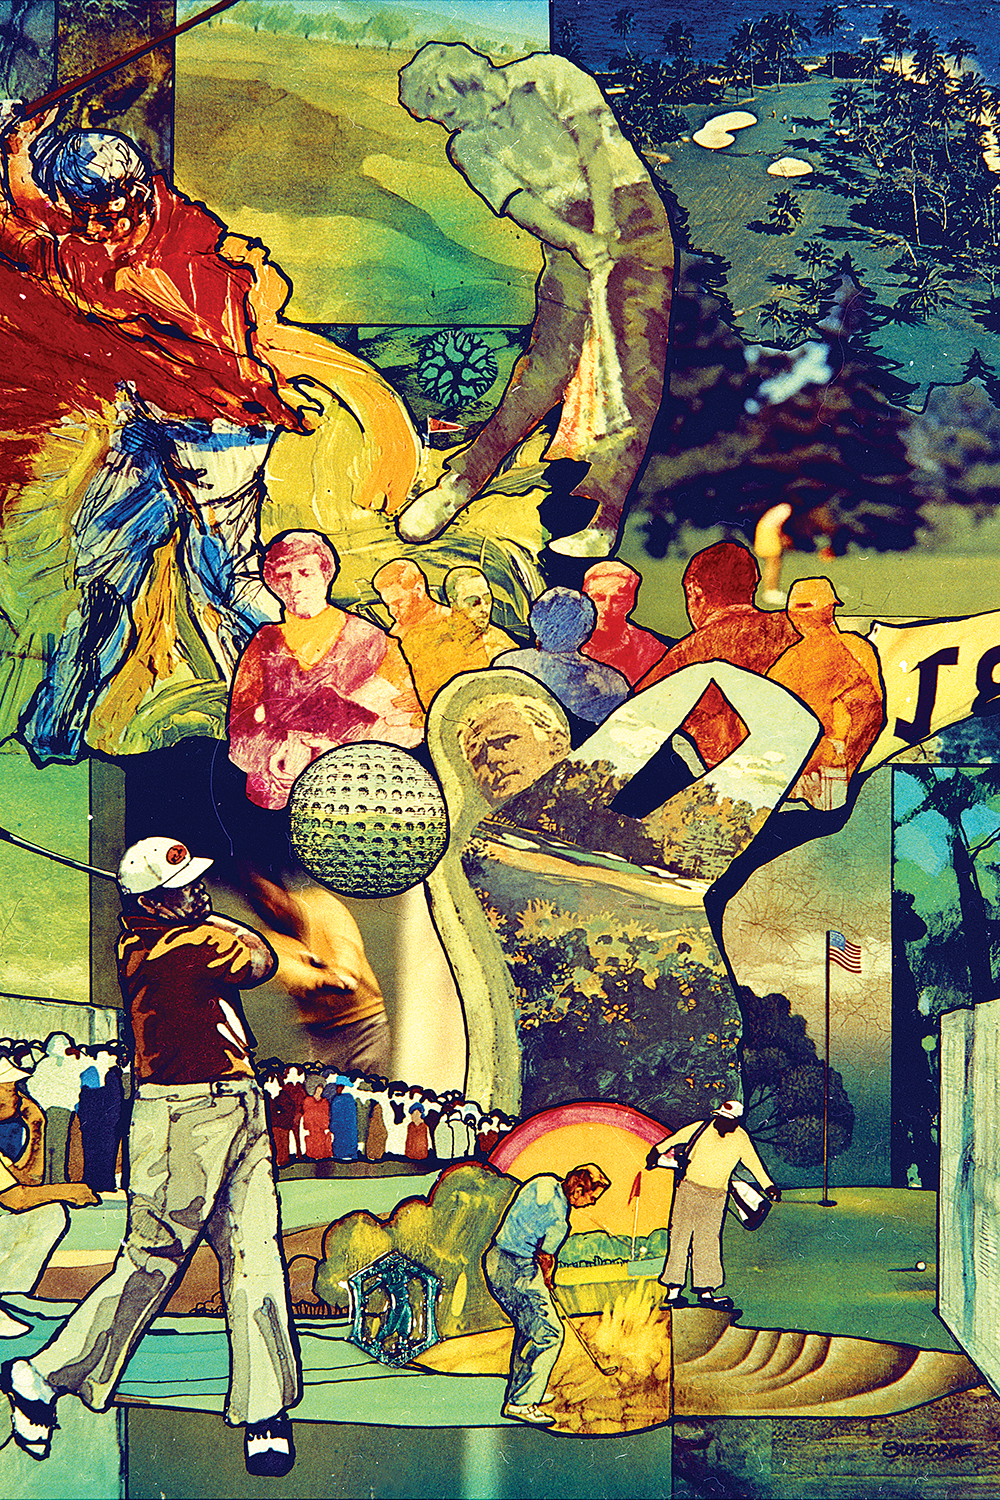 a colorful collage featuring golfers, golf courses, a golf ball and some on-lookers